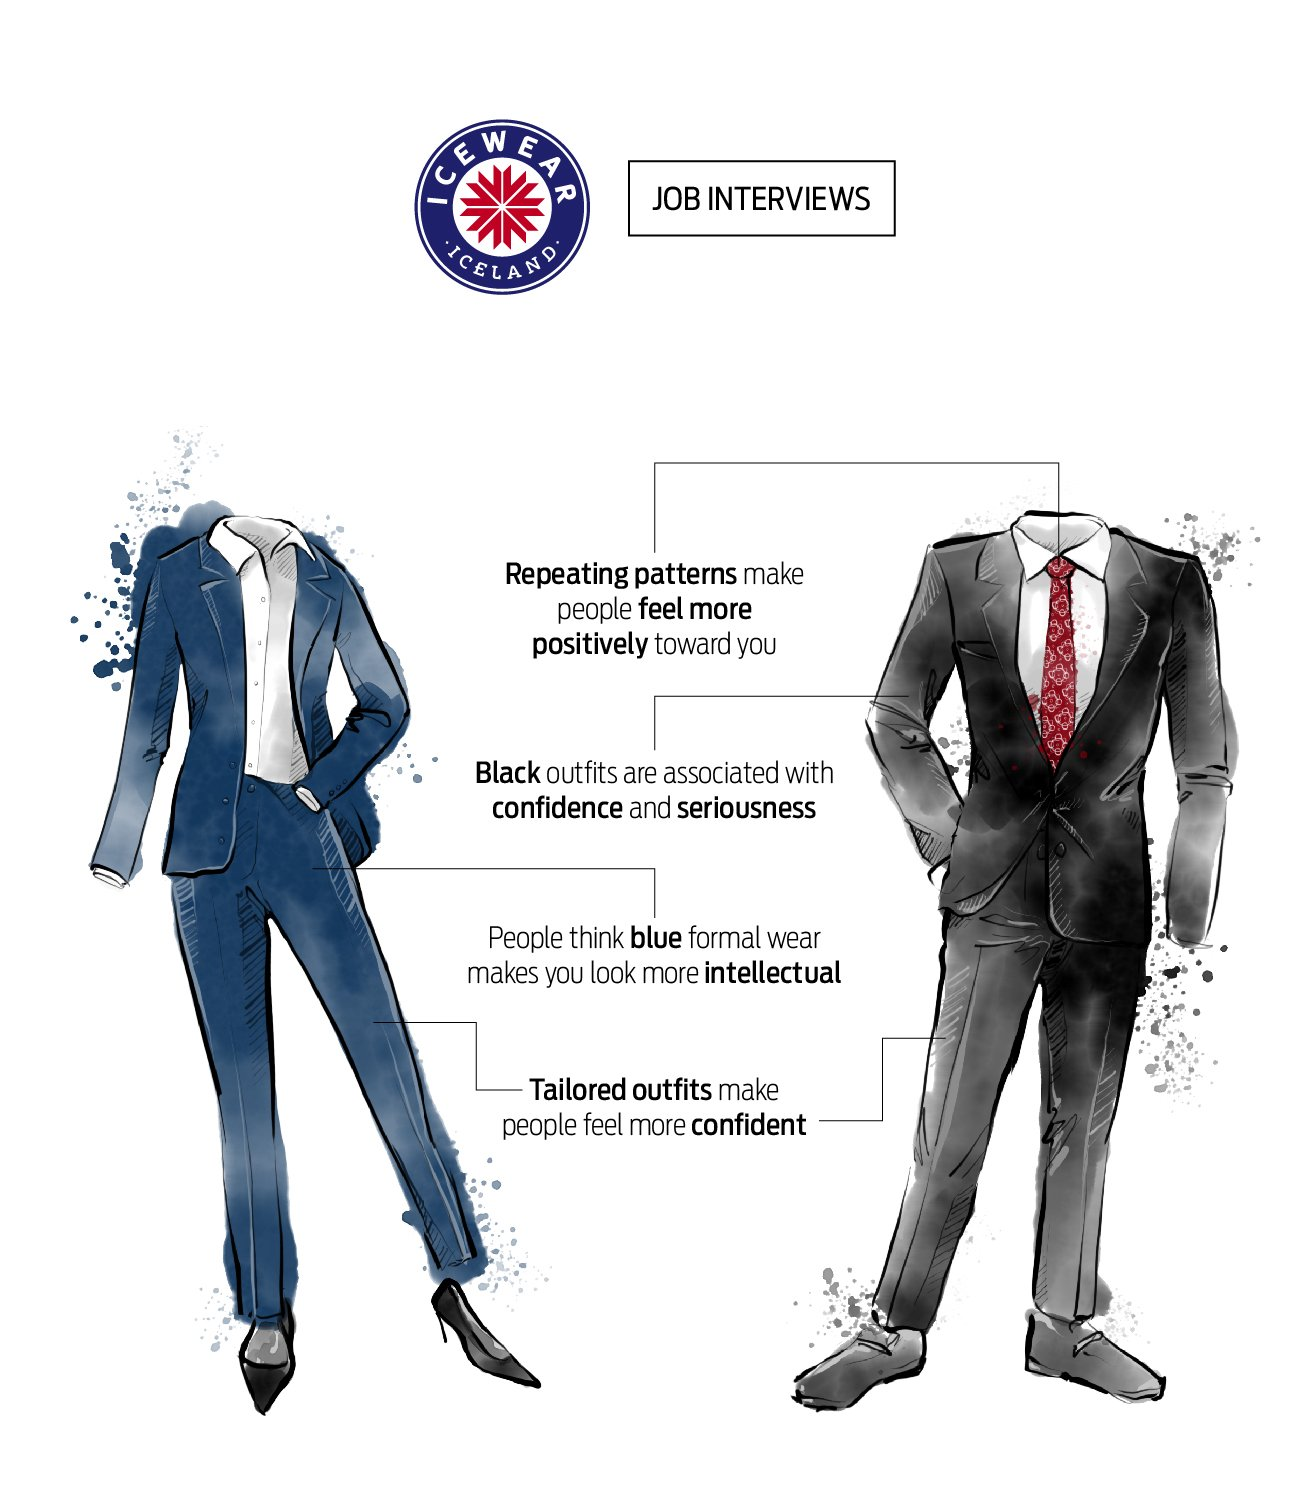 clothing for job interviews